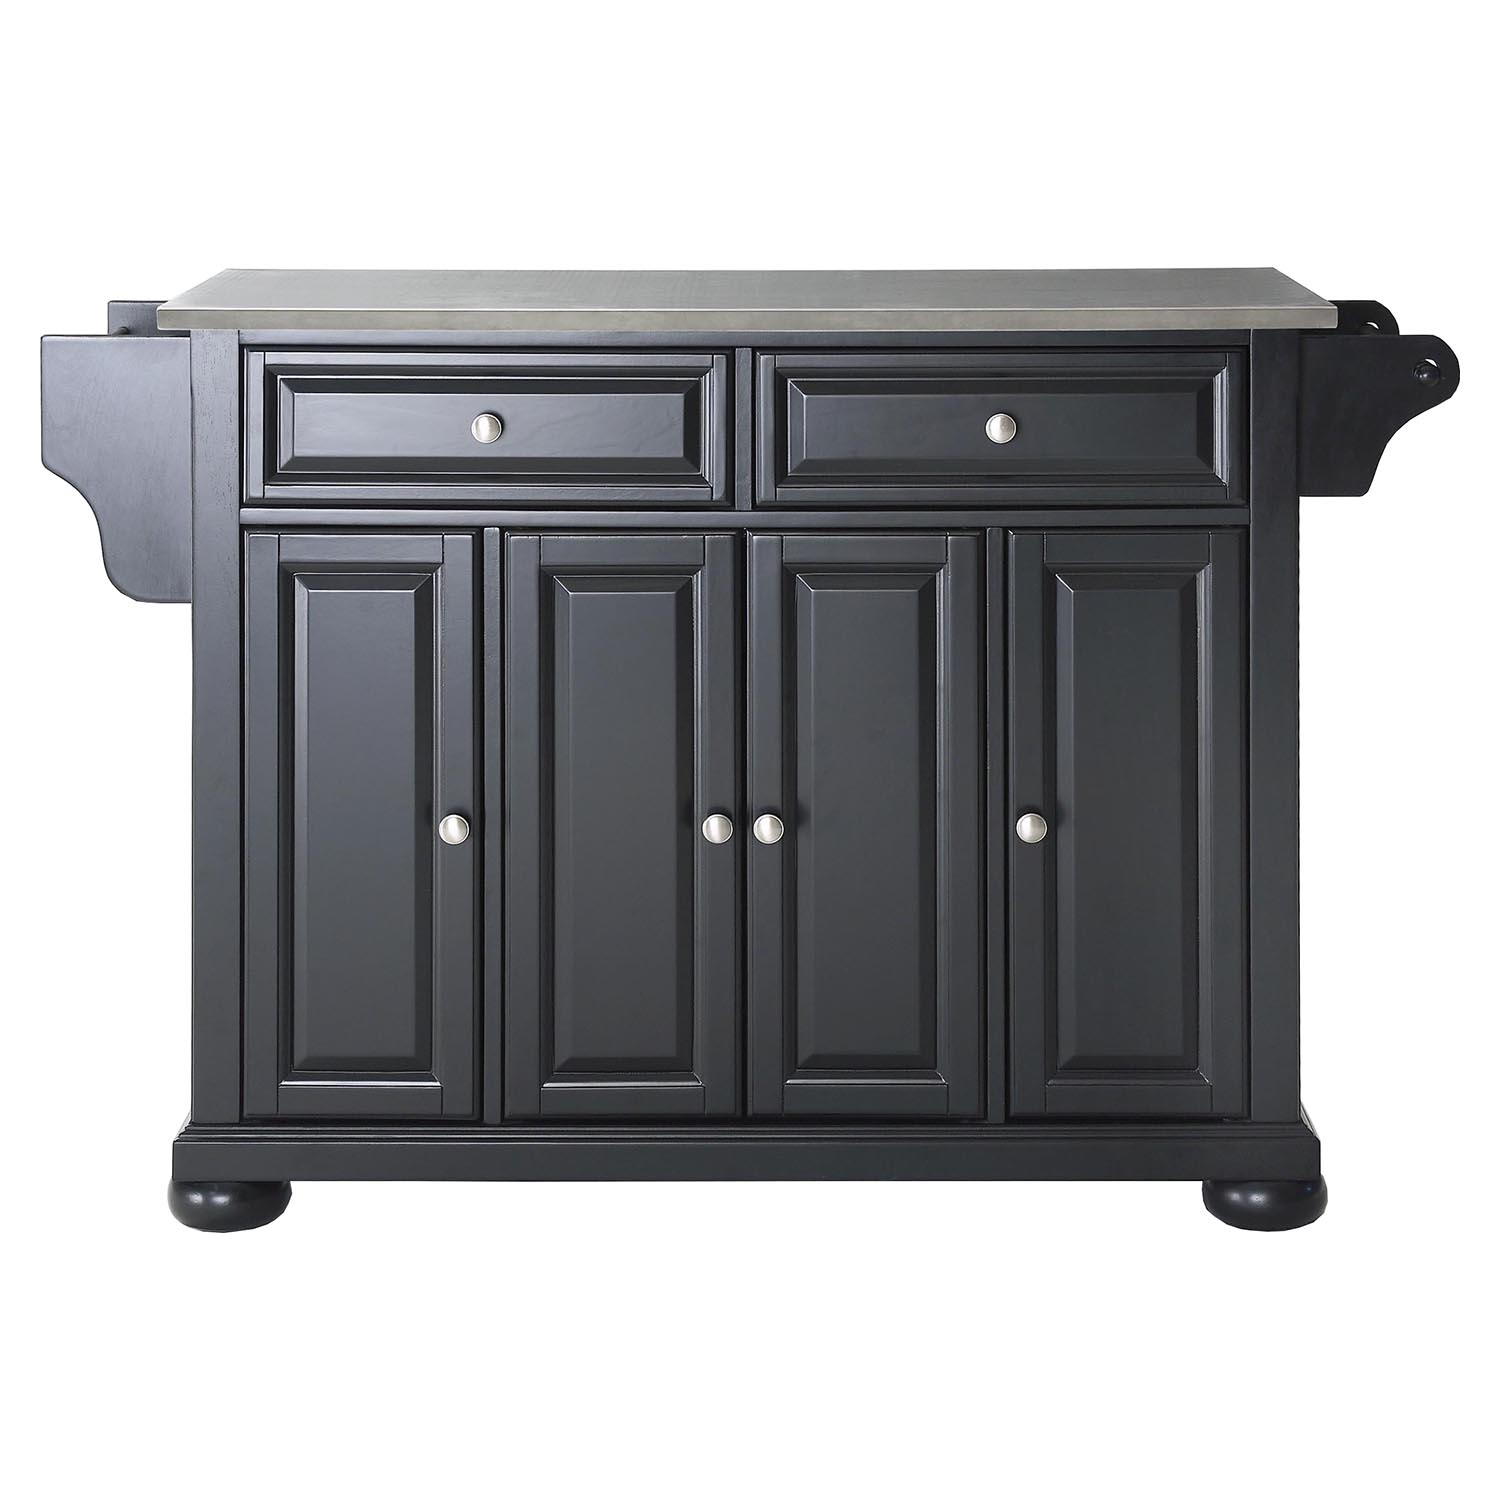 Alexandria Stainless Steel Top Kitchen Island  Black  DCG Stores